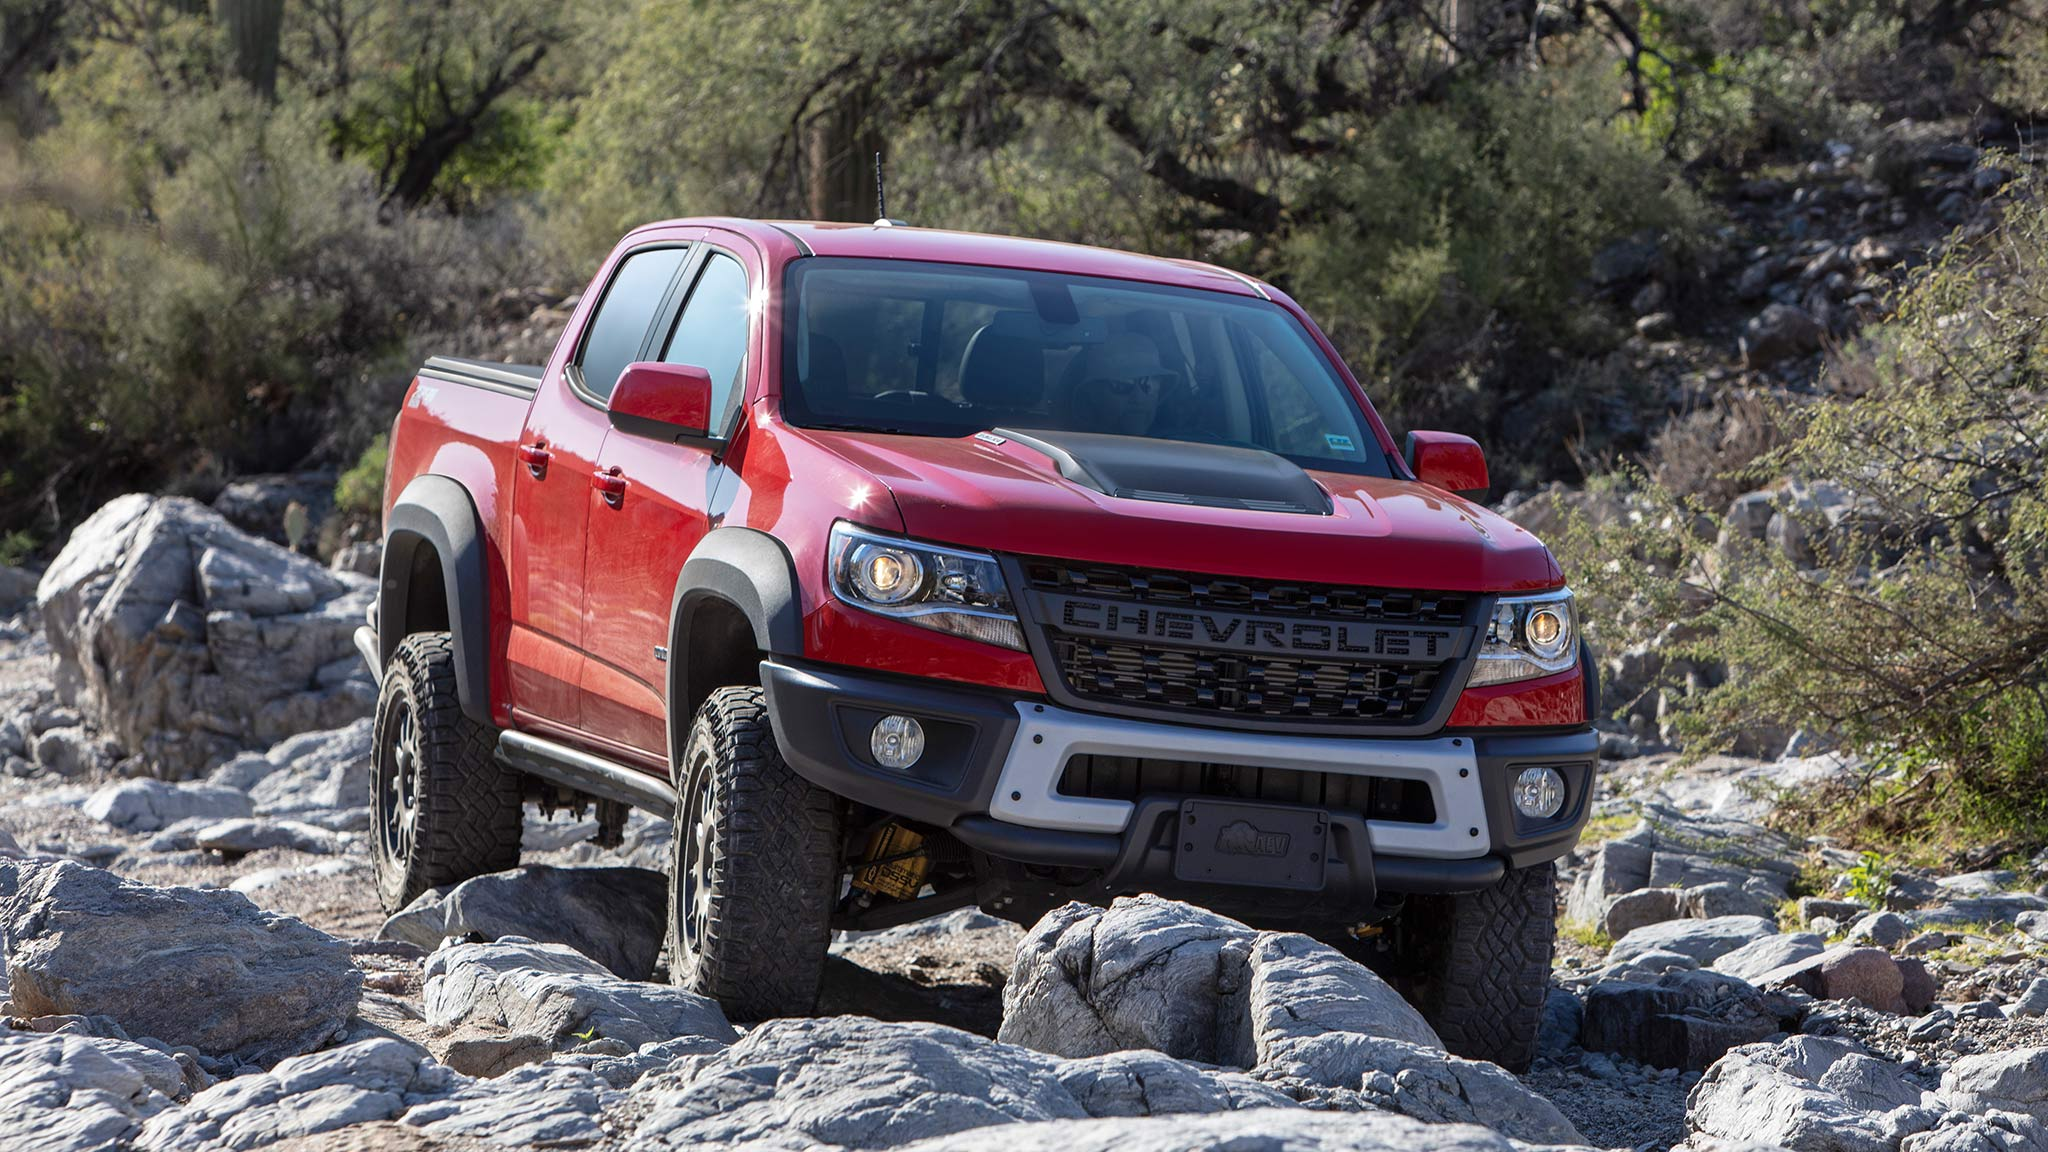 2019 Chevrolet Colorado ZR2 Bison First Drive: Off-Road Ludicrousness | Automobile Magazine